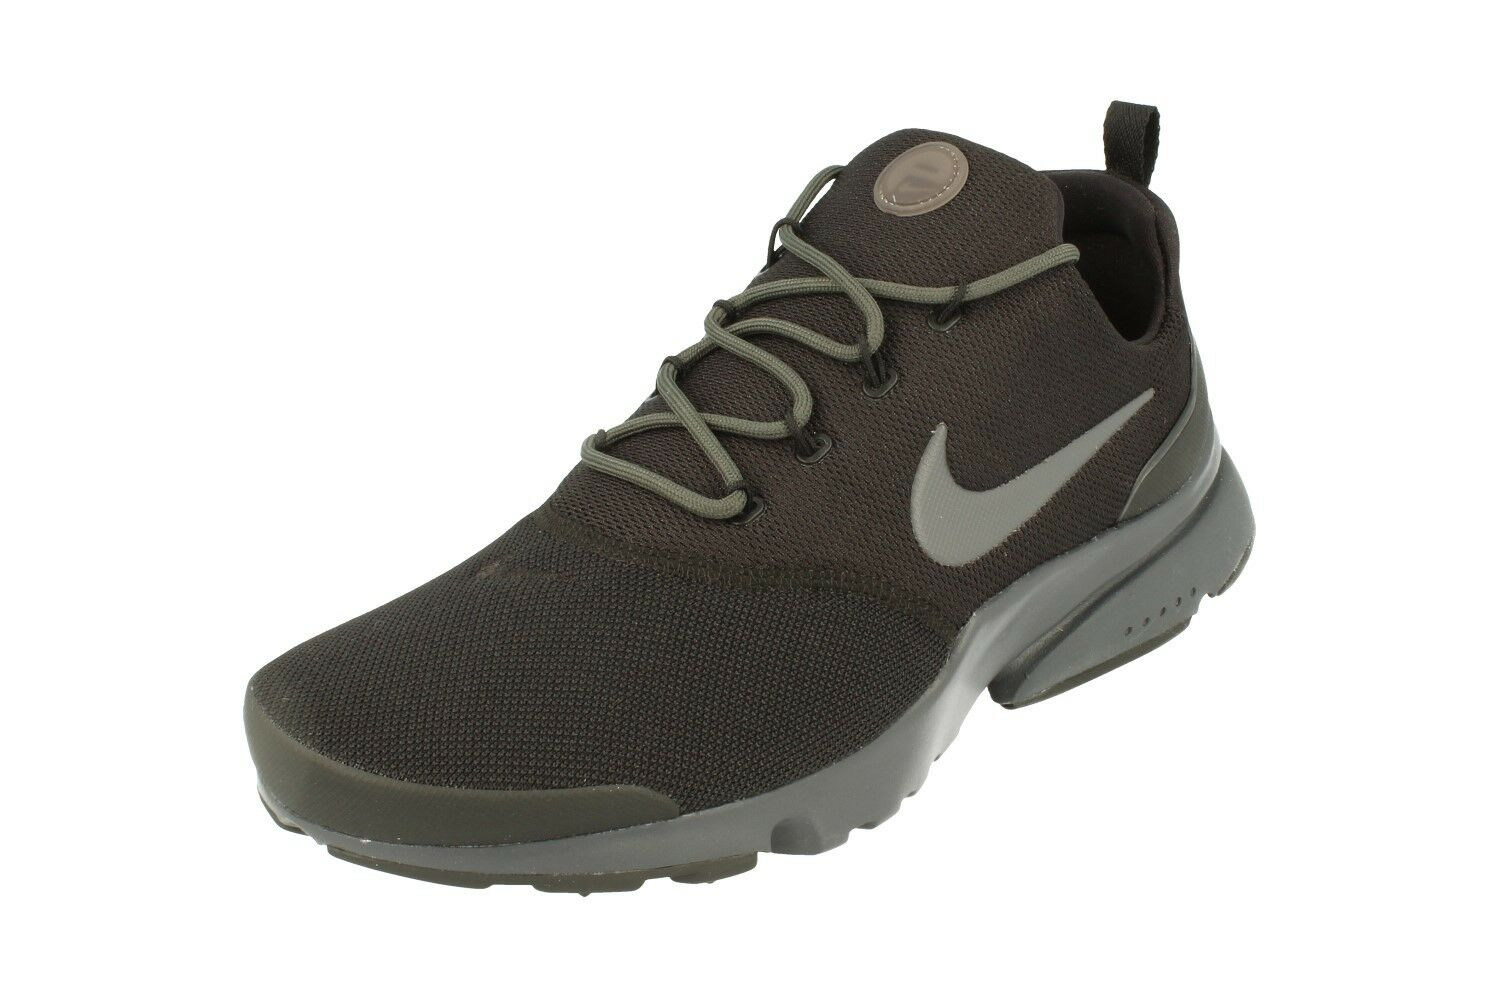 Nike Presto Fly Pour des hommes FonctionneHommest trainers 908019 paniers chaussures 008